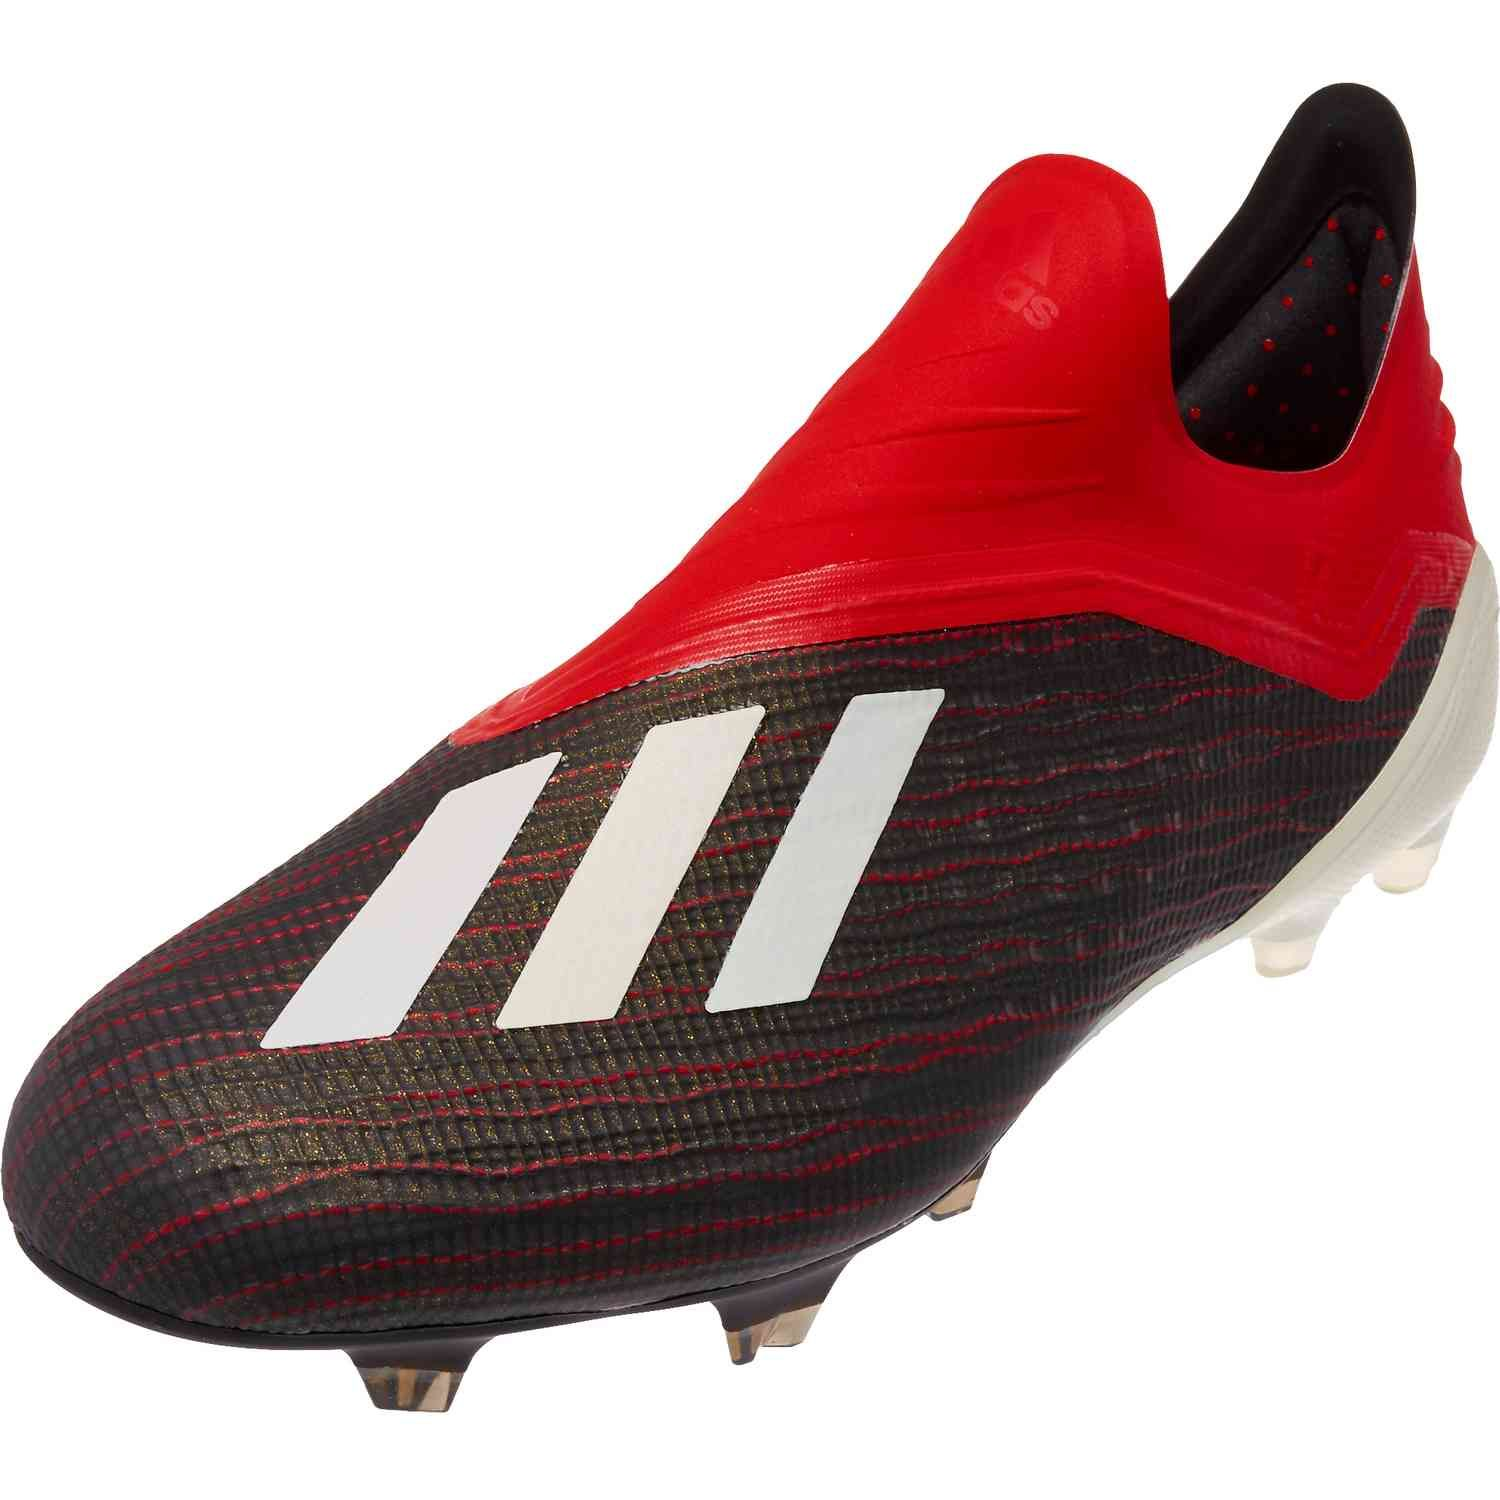 Pin On Adidas X Soccer Shoes